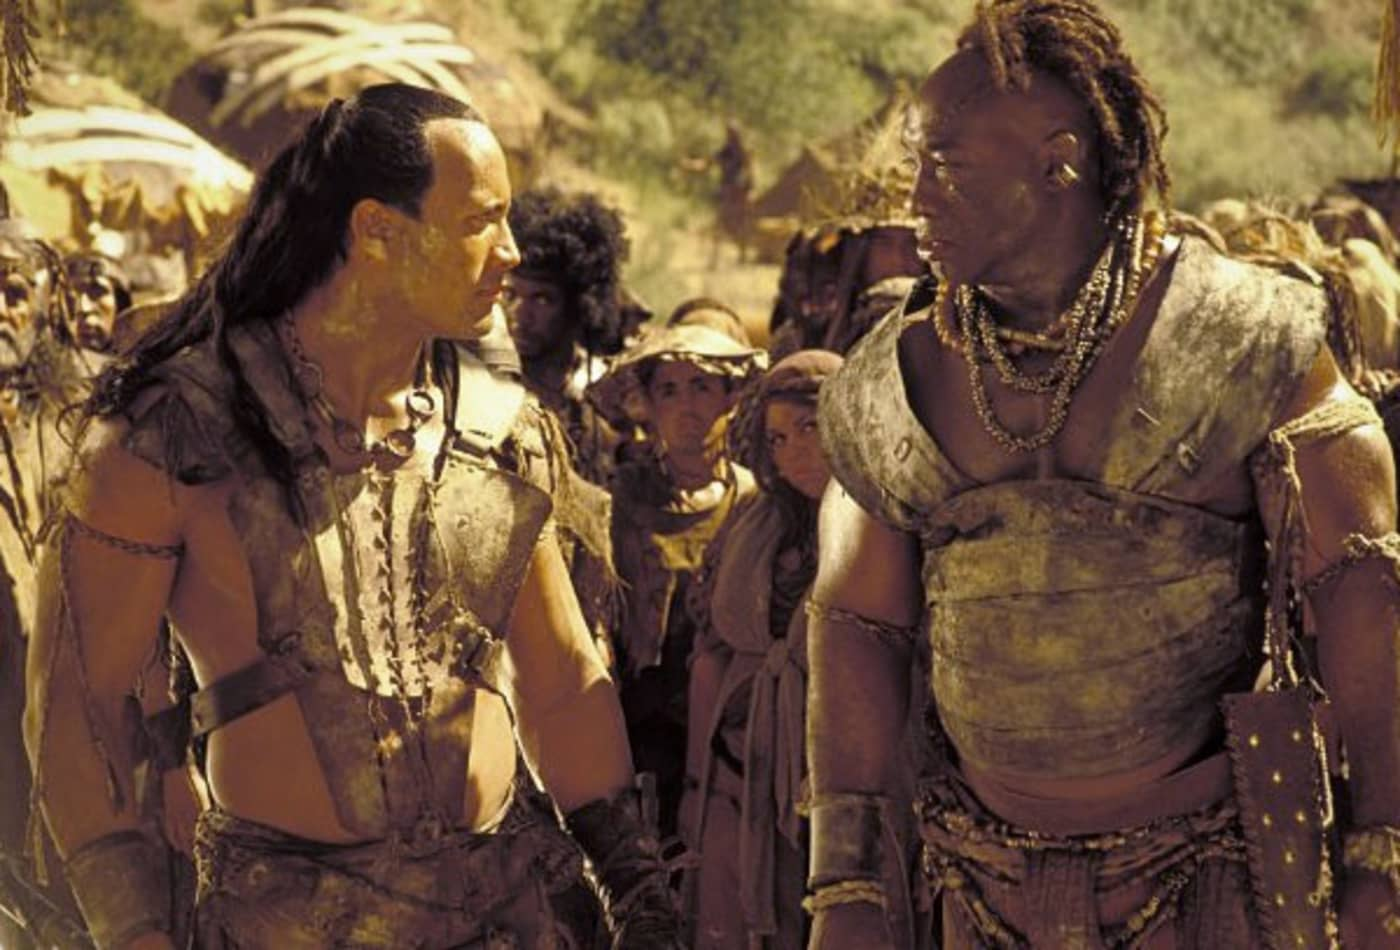 The-Scorpion-King-Highest-Grossing-Fantasy-Movies-CNBC.jpg